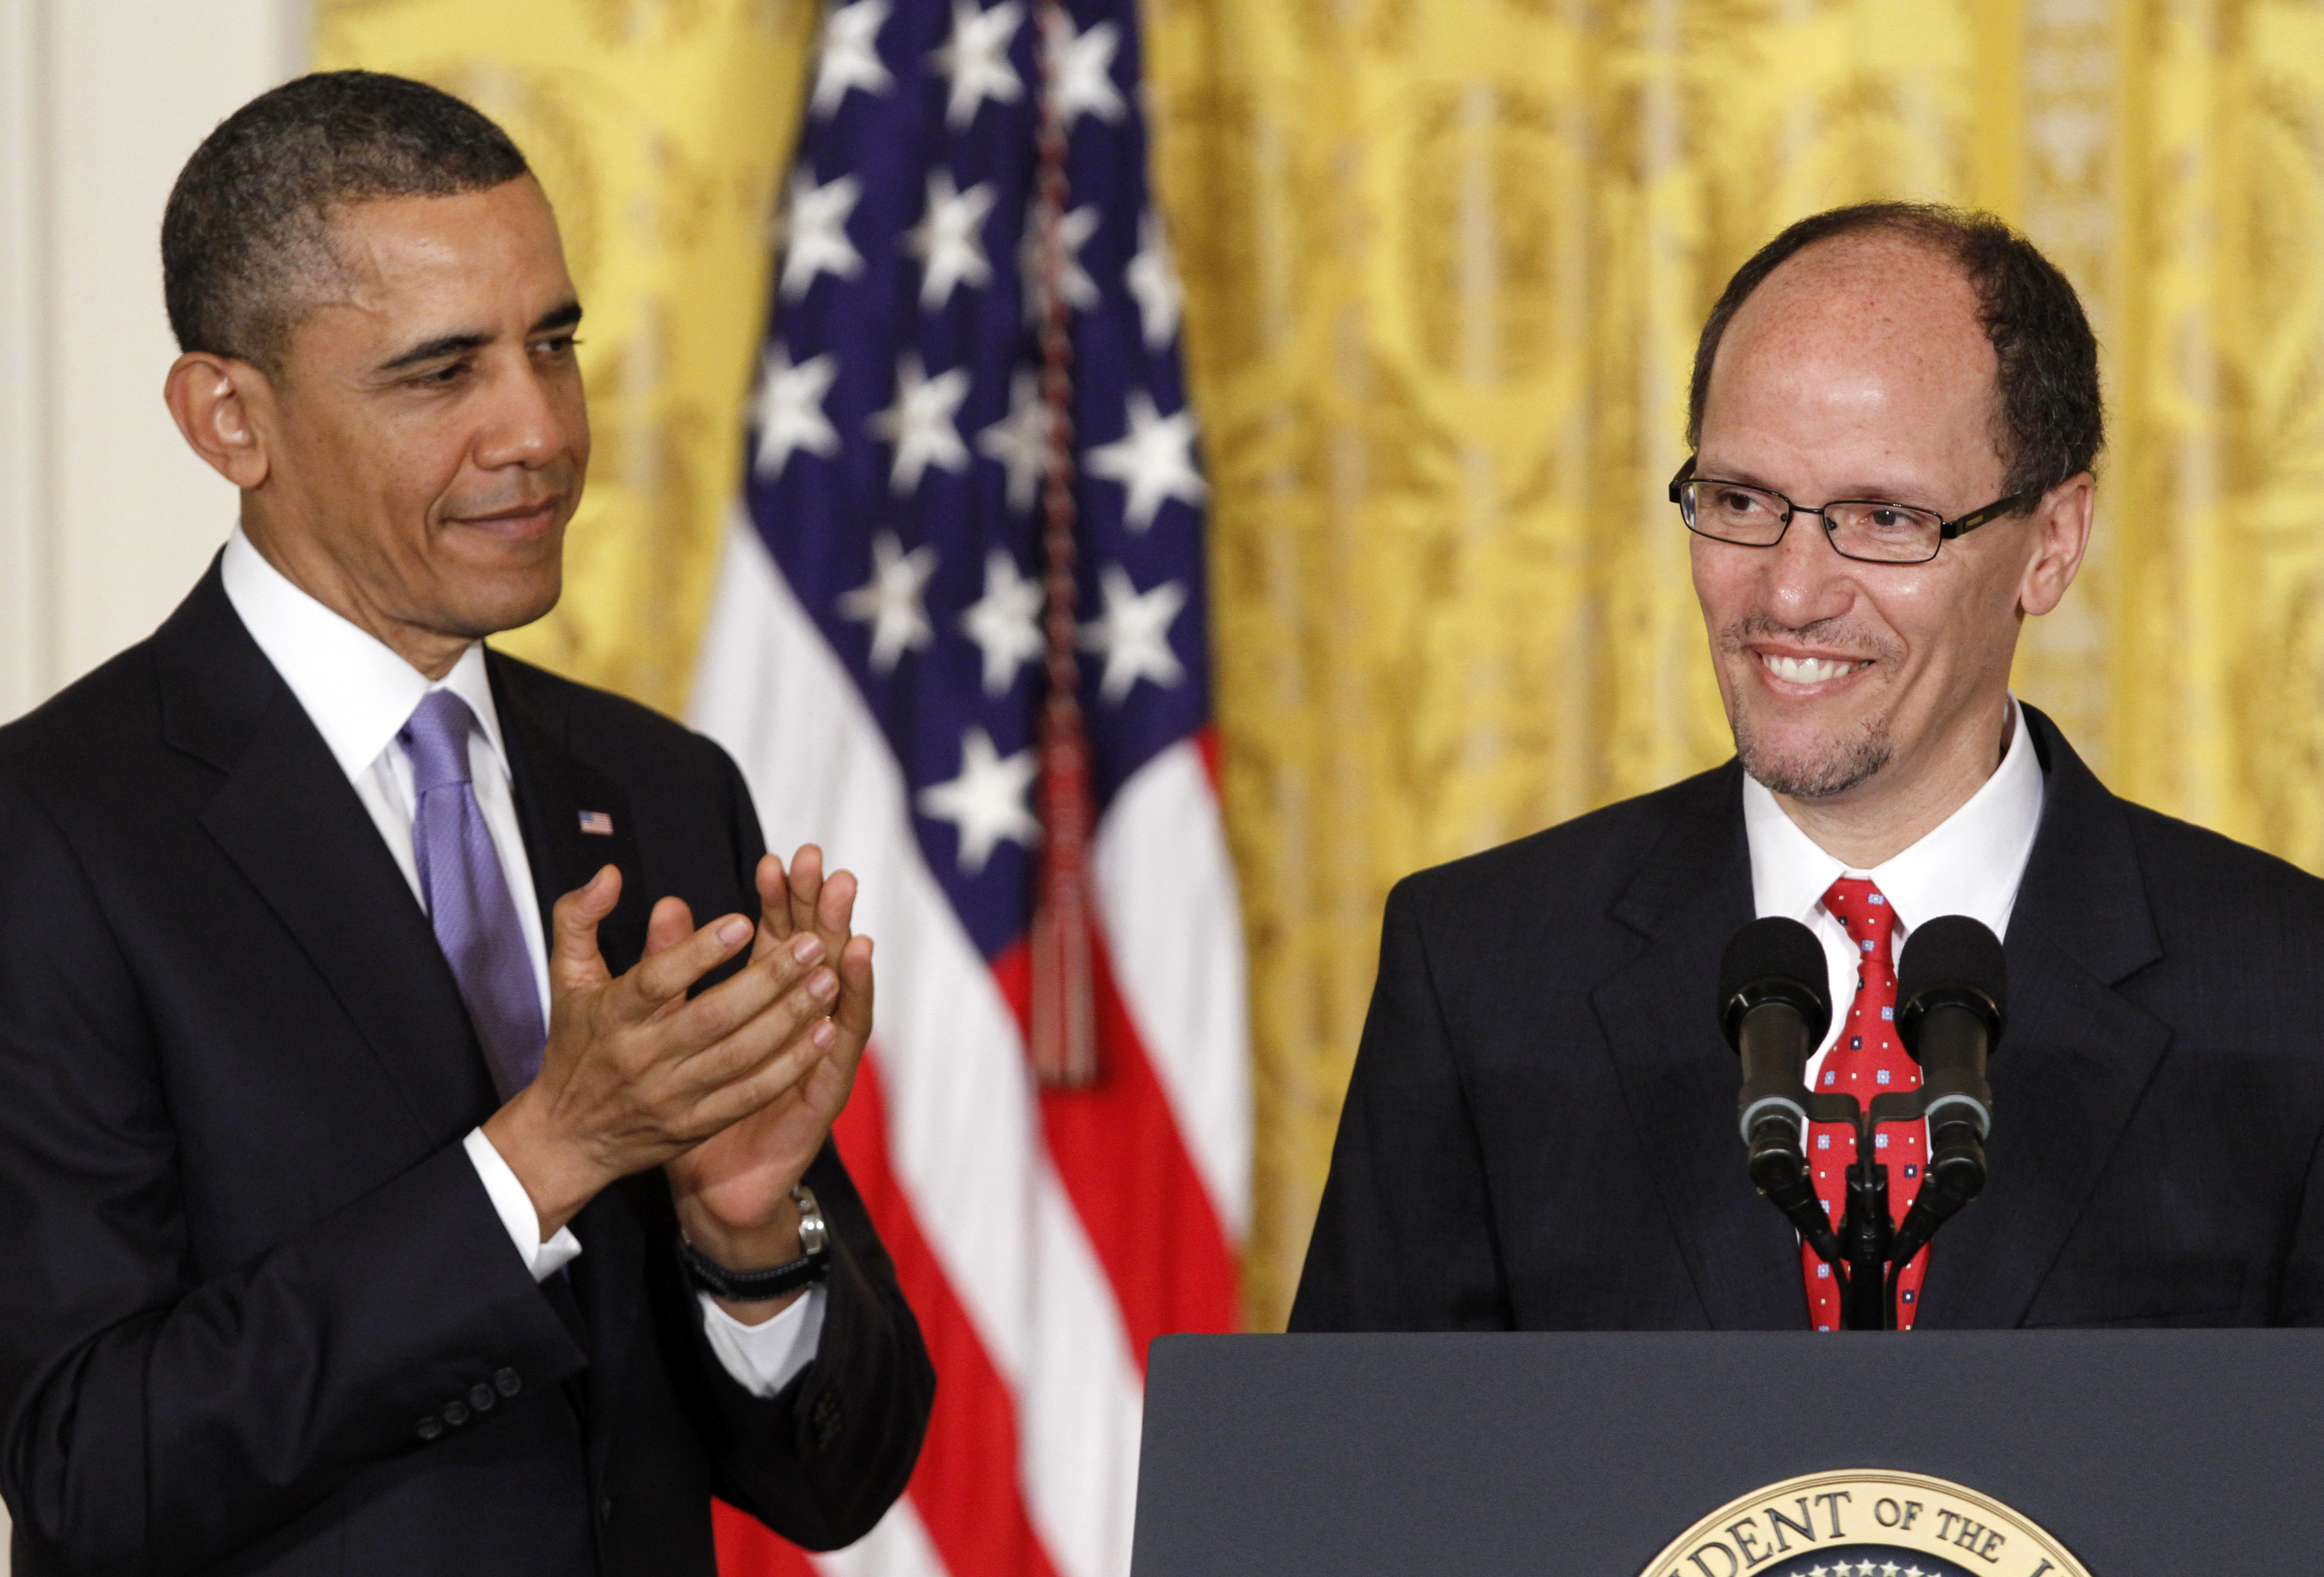 Buffalo native Thomas Perez, hailed by President Obama at announcement last month, faces rough sledding Thursday.